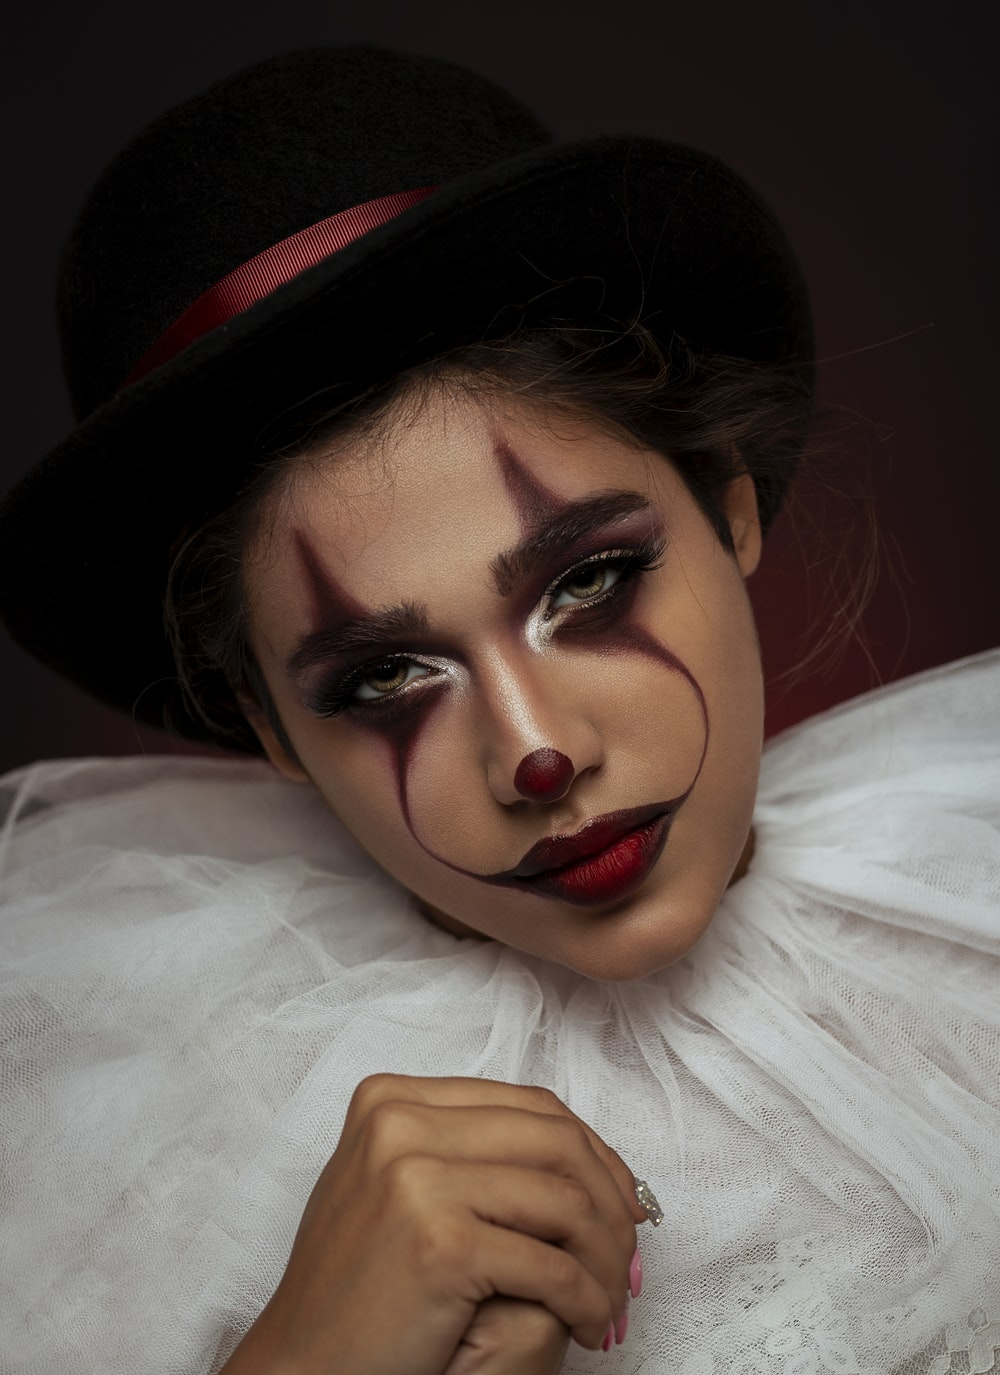 woman with clown-themed makeup